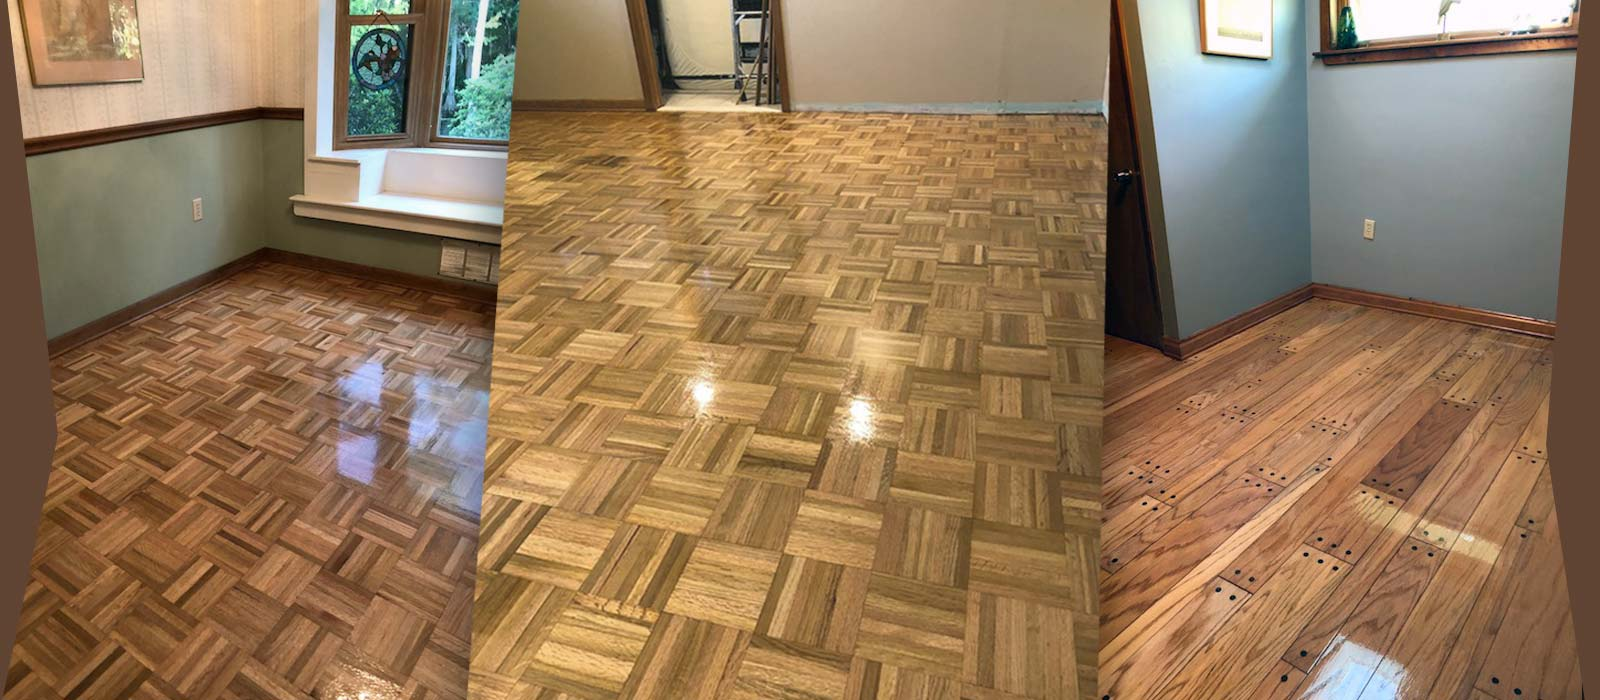 Finishing Touch Floors - Parquet & Engineered Planking